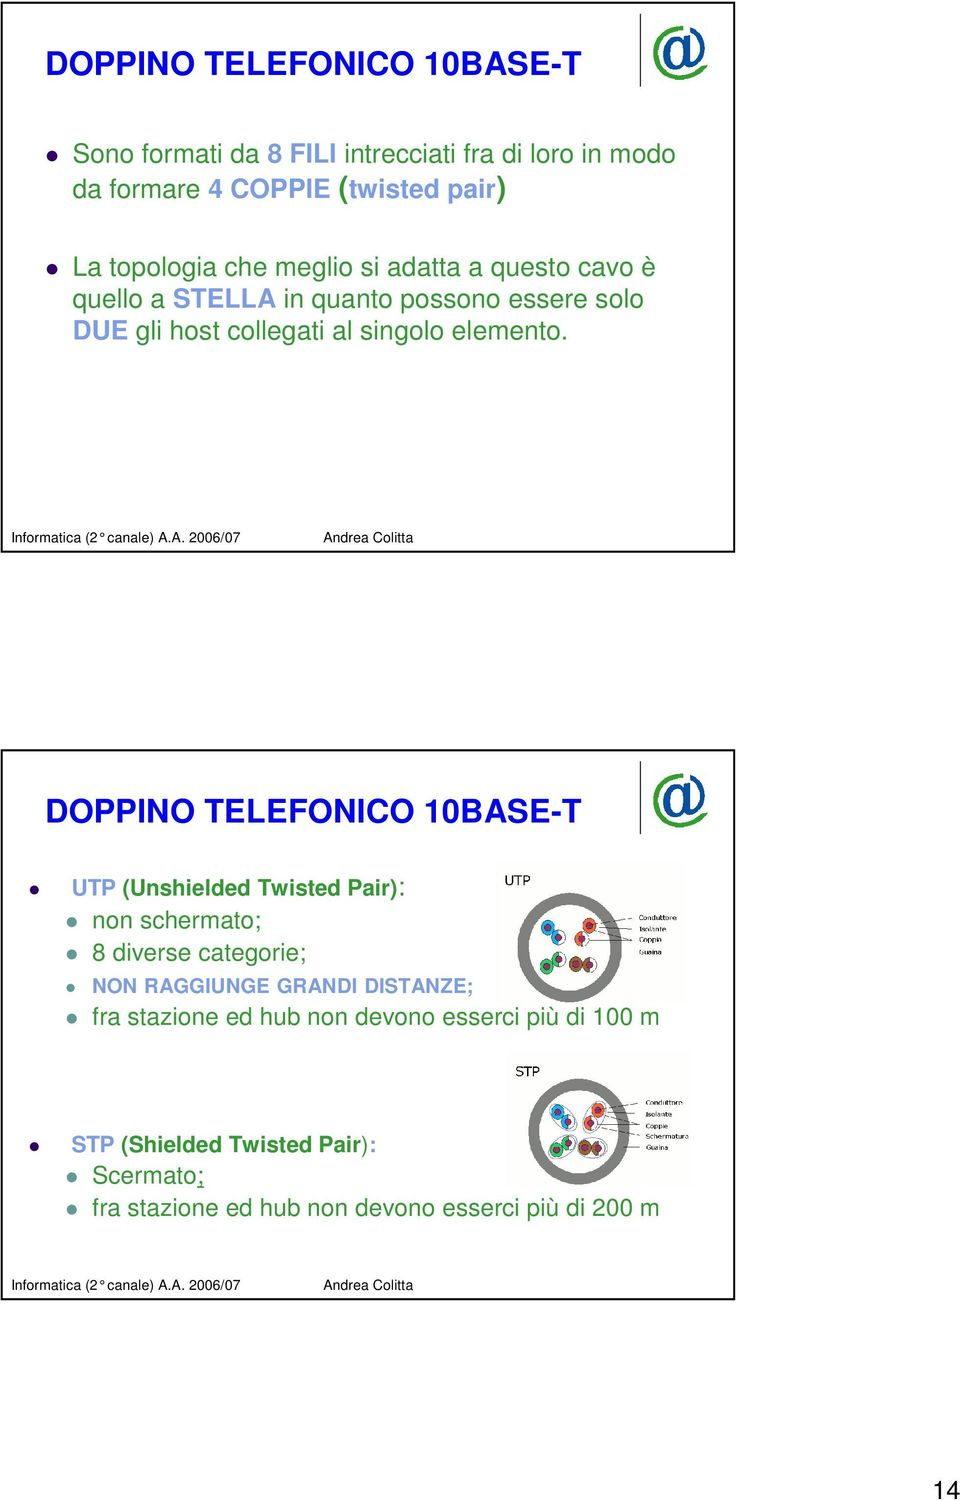 DOPPINO TELEFONICO 10BASE-T UTP (Unshielded Twisted Pair): non schermato; 8 diverse categorie; NON RAGGIUNGE GRANDI DISTANZE; fra